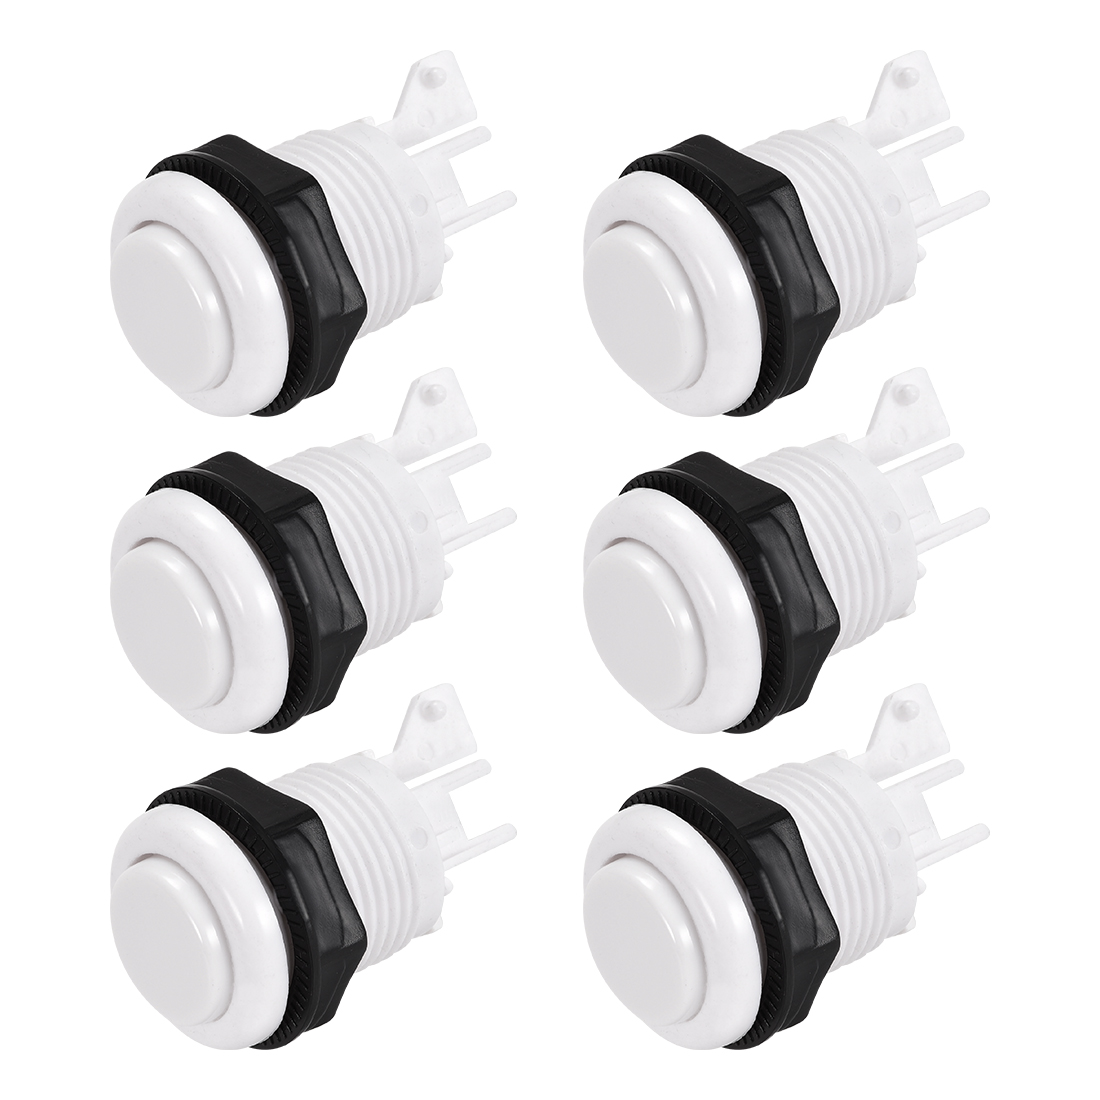 27mm Mounting Game Push Button Switch Shell for Arcade Video Games White 6pcs